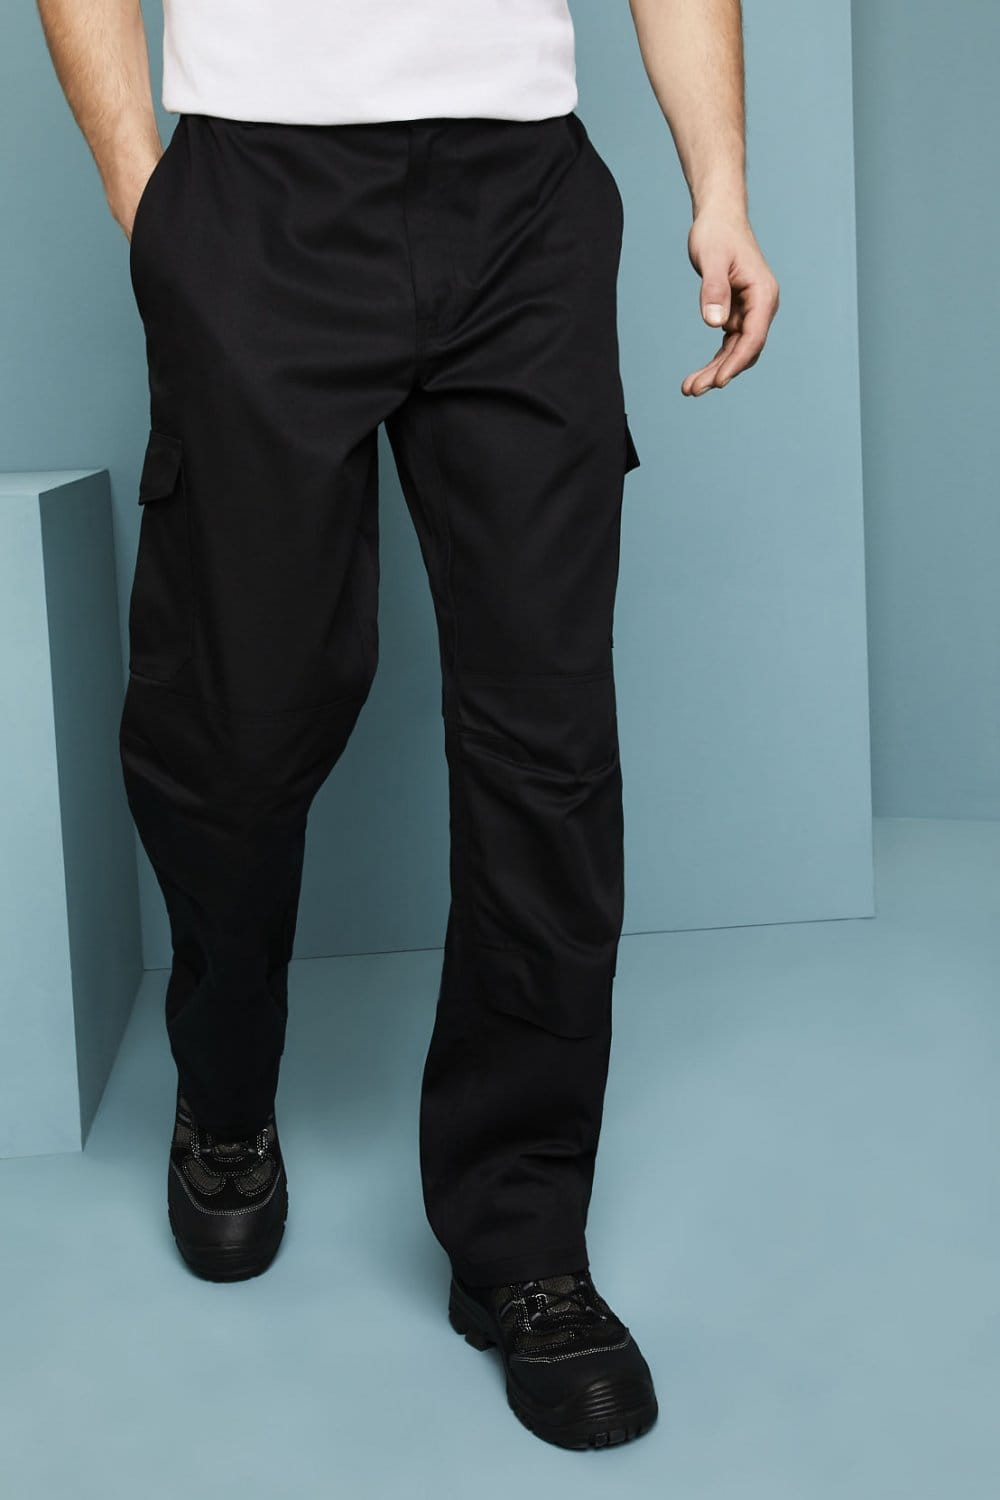 4fd55bfbc Workwear Trouser with Side Pockets Kneepads - SHOP ALL from Simon Jersey UK